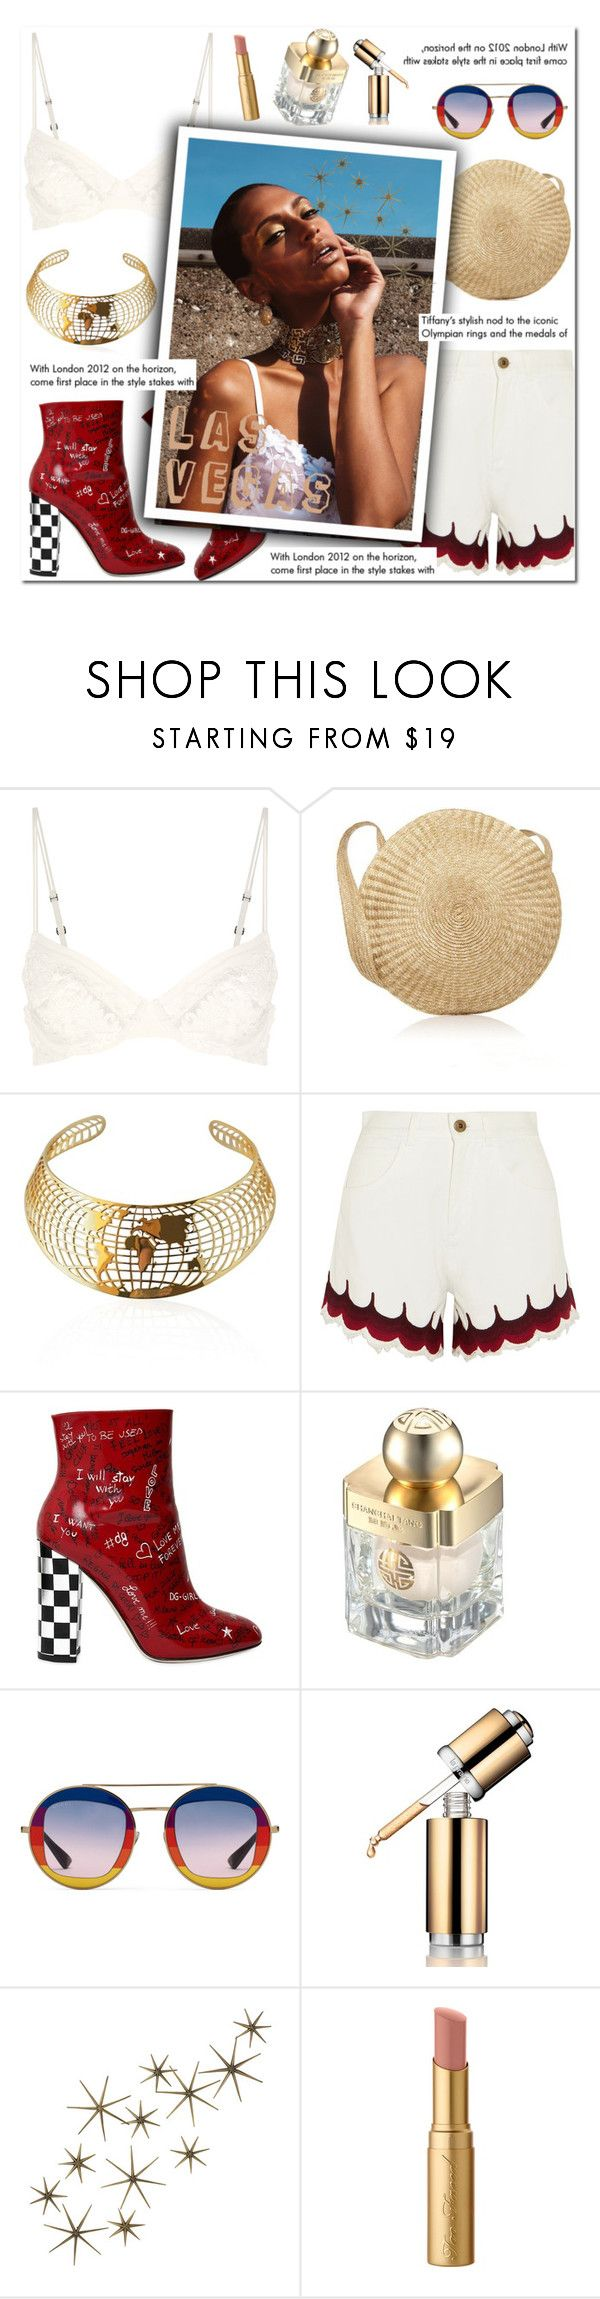 """""""How to Style  White Embellished Denim Shorts with a White Lace Bra Top, Red Summer Booties, a Straw Bag and Gold Choker for Travel to Las Vegas this Summer"""" by outfitsfortravel ❤ liked on Polyvore featuring Chloé, Dolce&Gabbana, Shanghai Tang, Gucci, La Prairie, Global Views, Tiffany & Co. and Too Faced Cosmetics"""